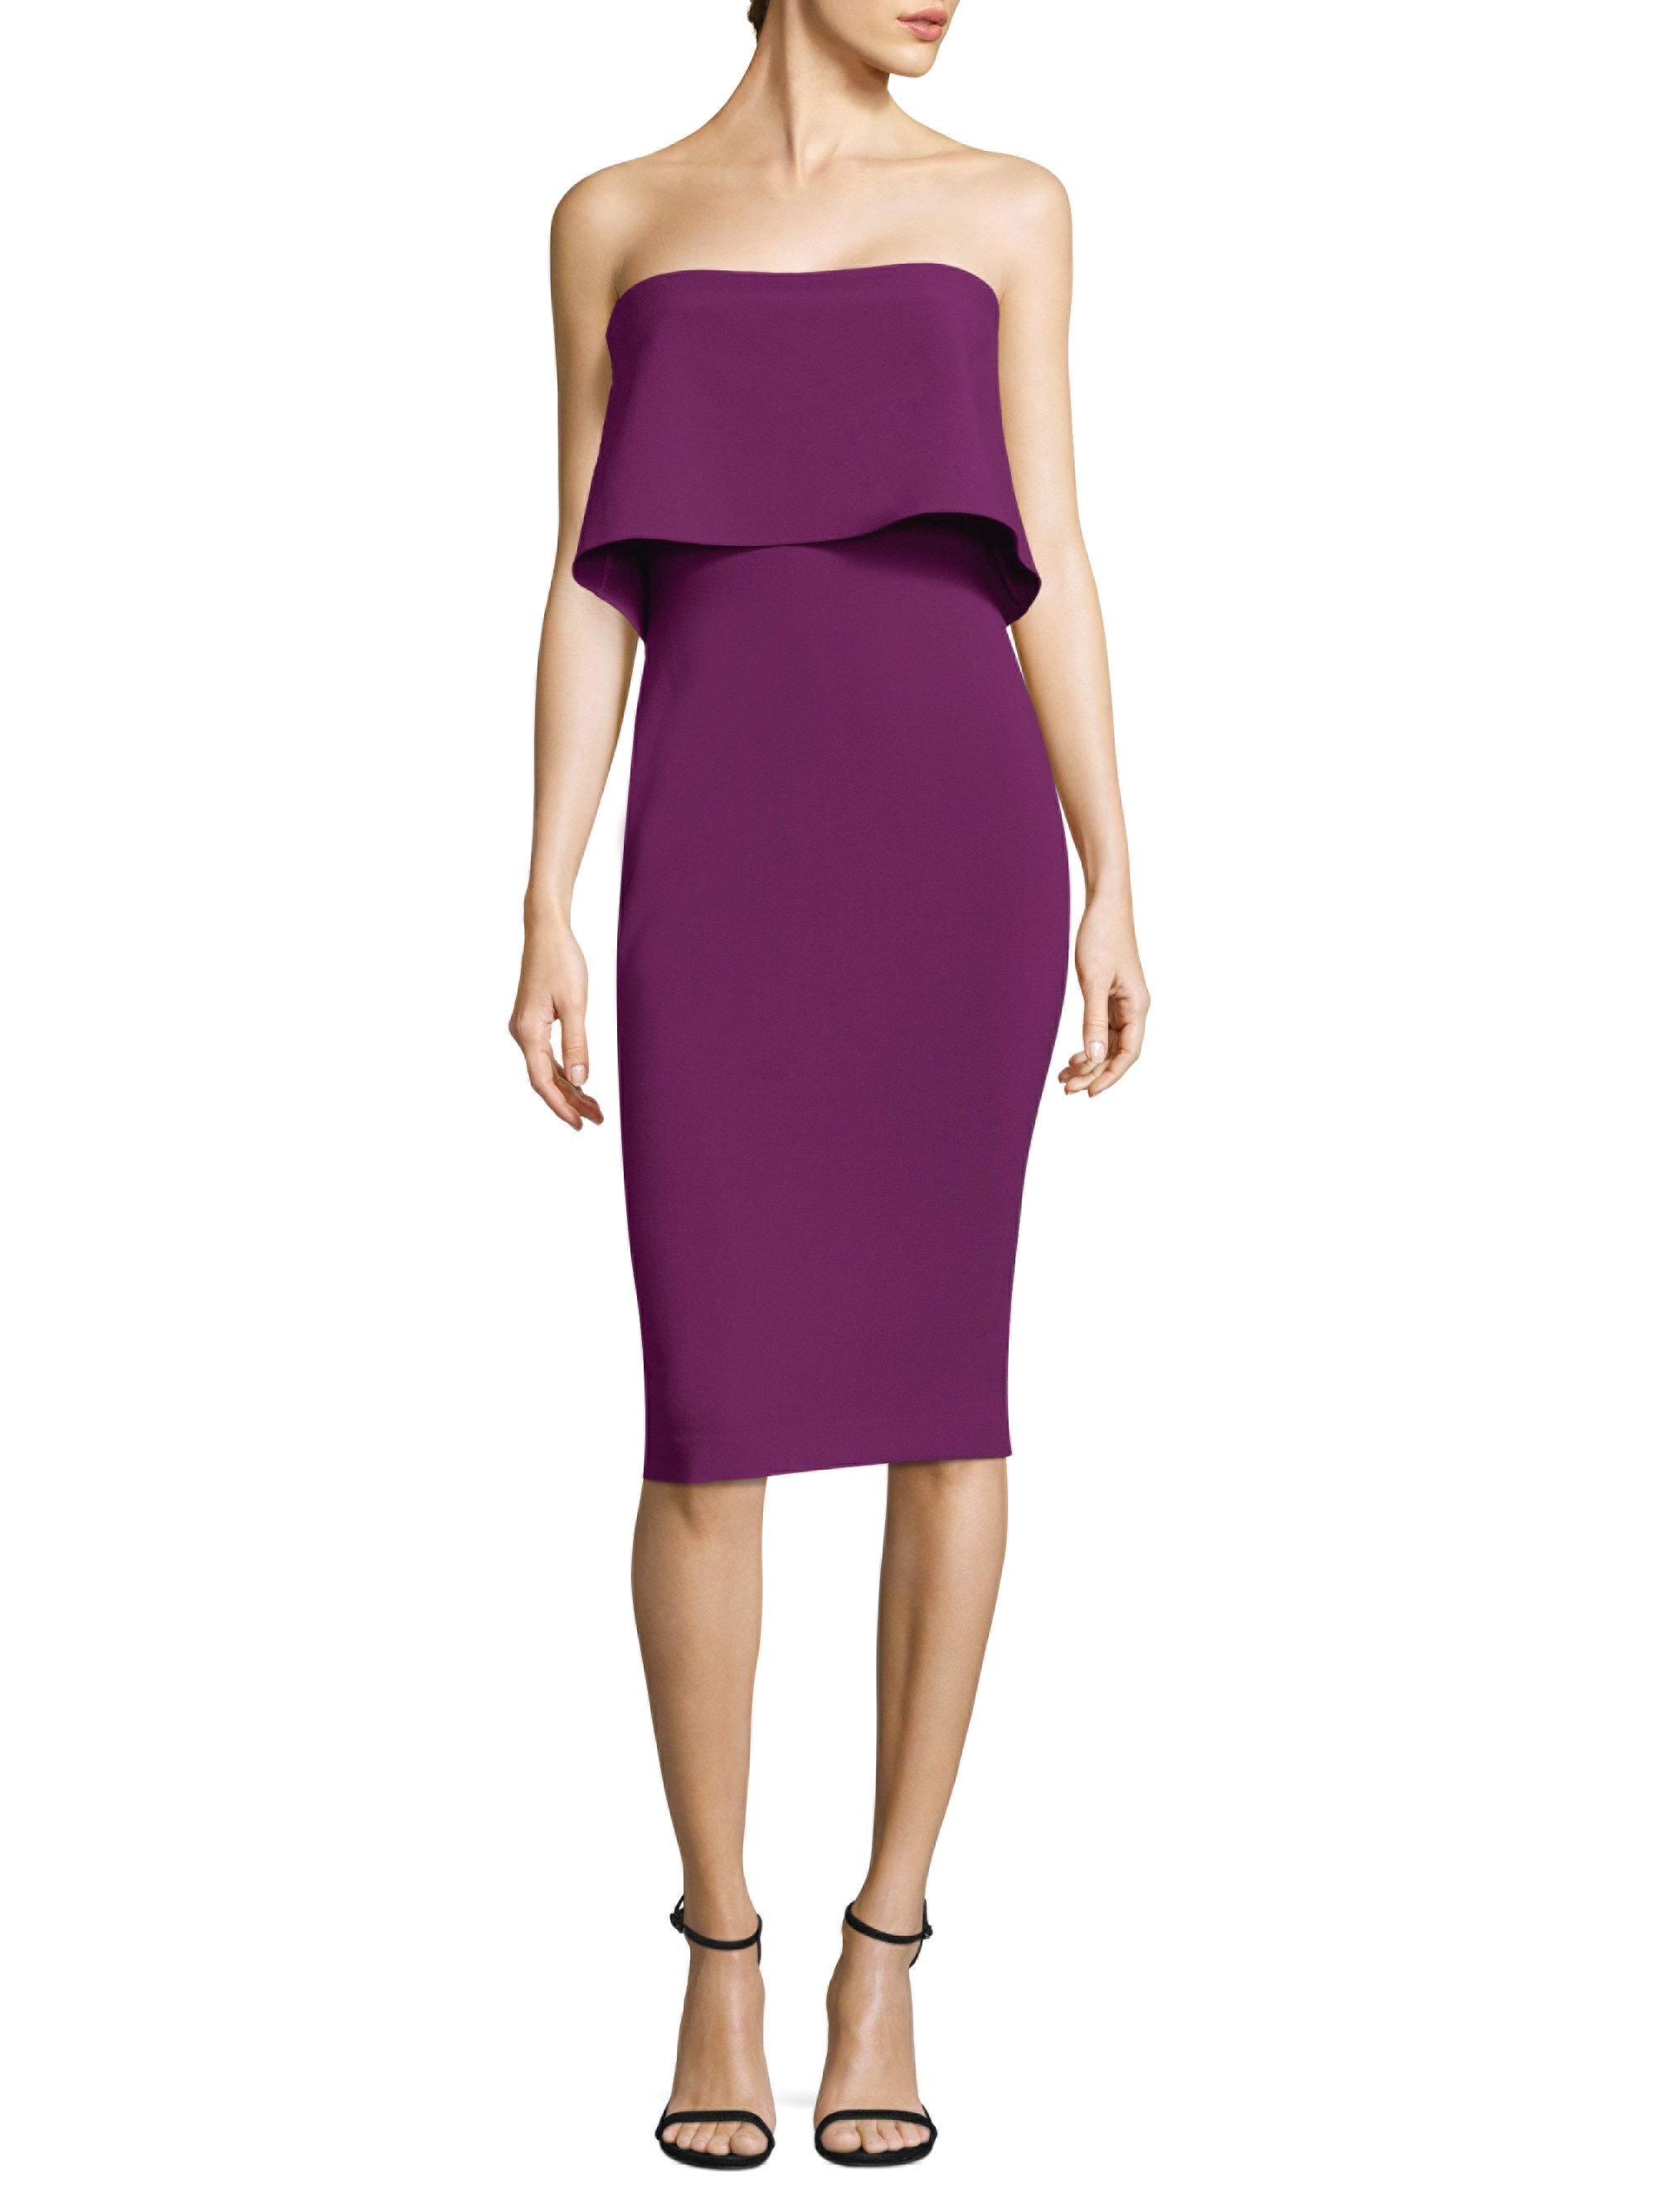 Lyst - Likely Driggs Strapless Dress in Purple